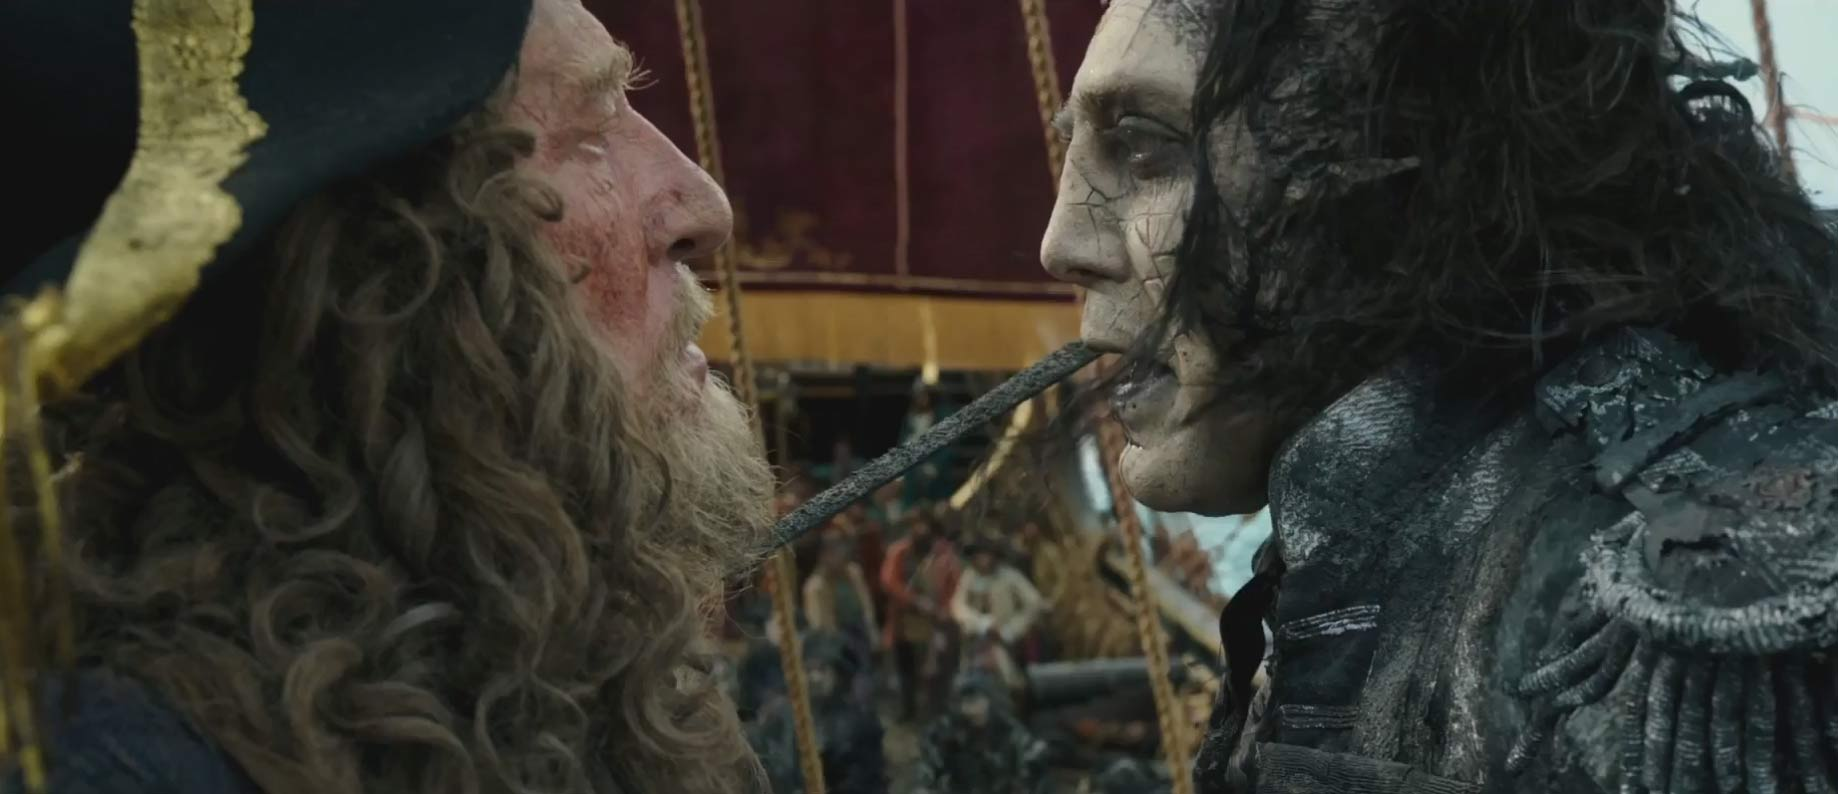 Pirates of the Caribbean: Dead Men Tell No Tales Trailer 2